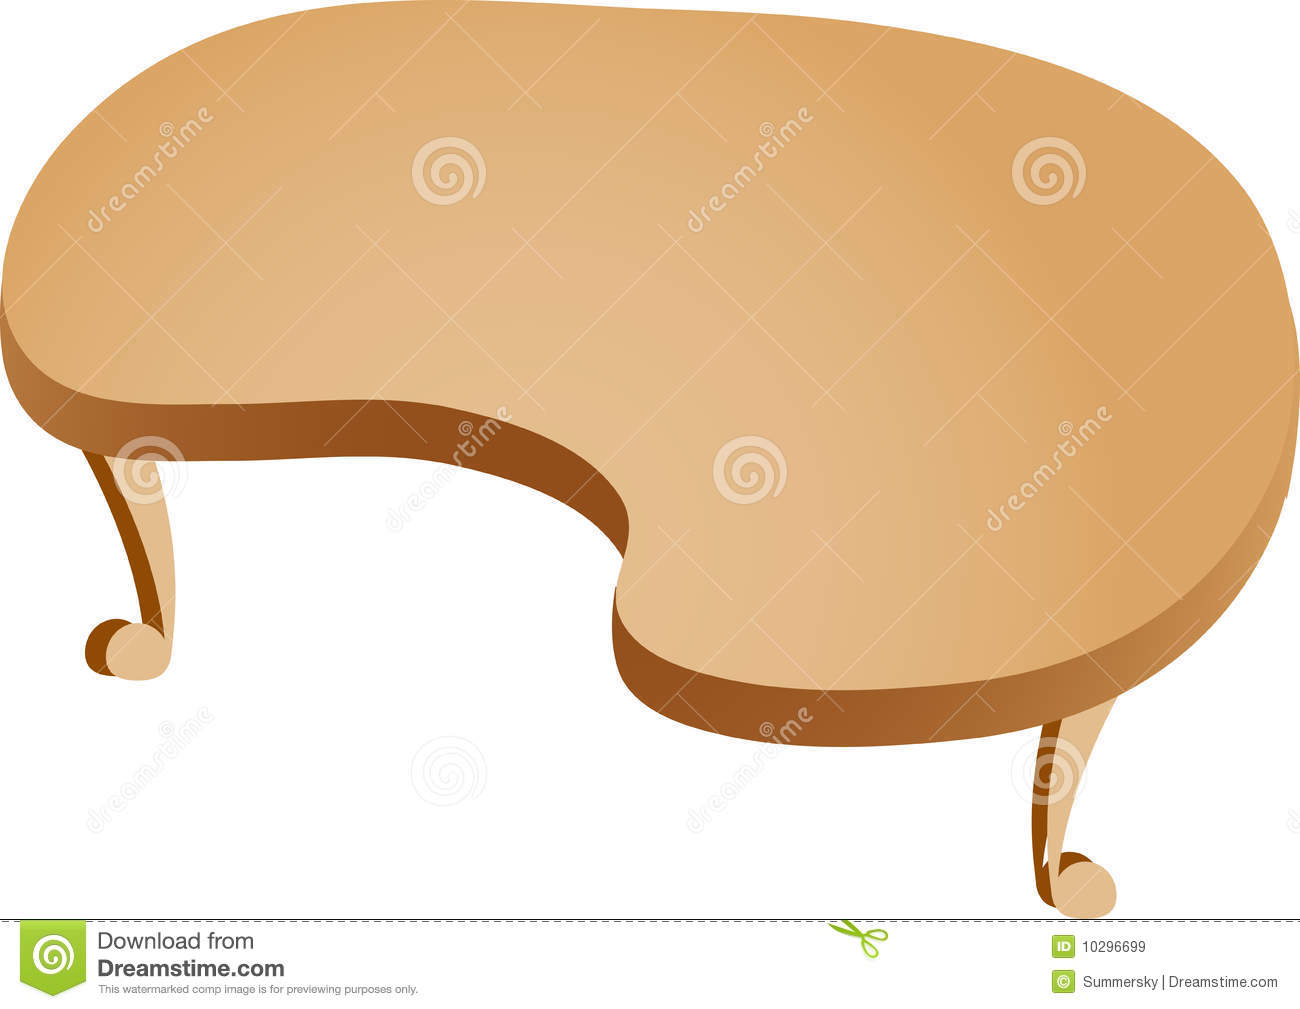 old wooden desk chair round and a half swivel cartoon table stock illustration. image of history, illustration - 10296699